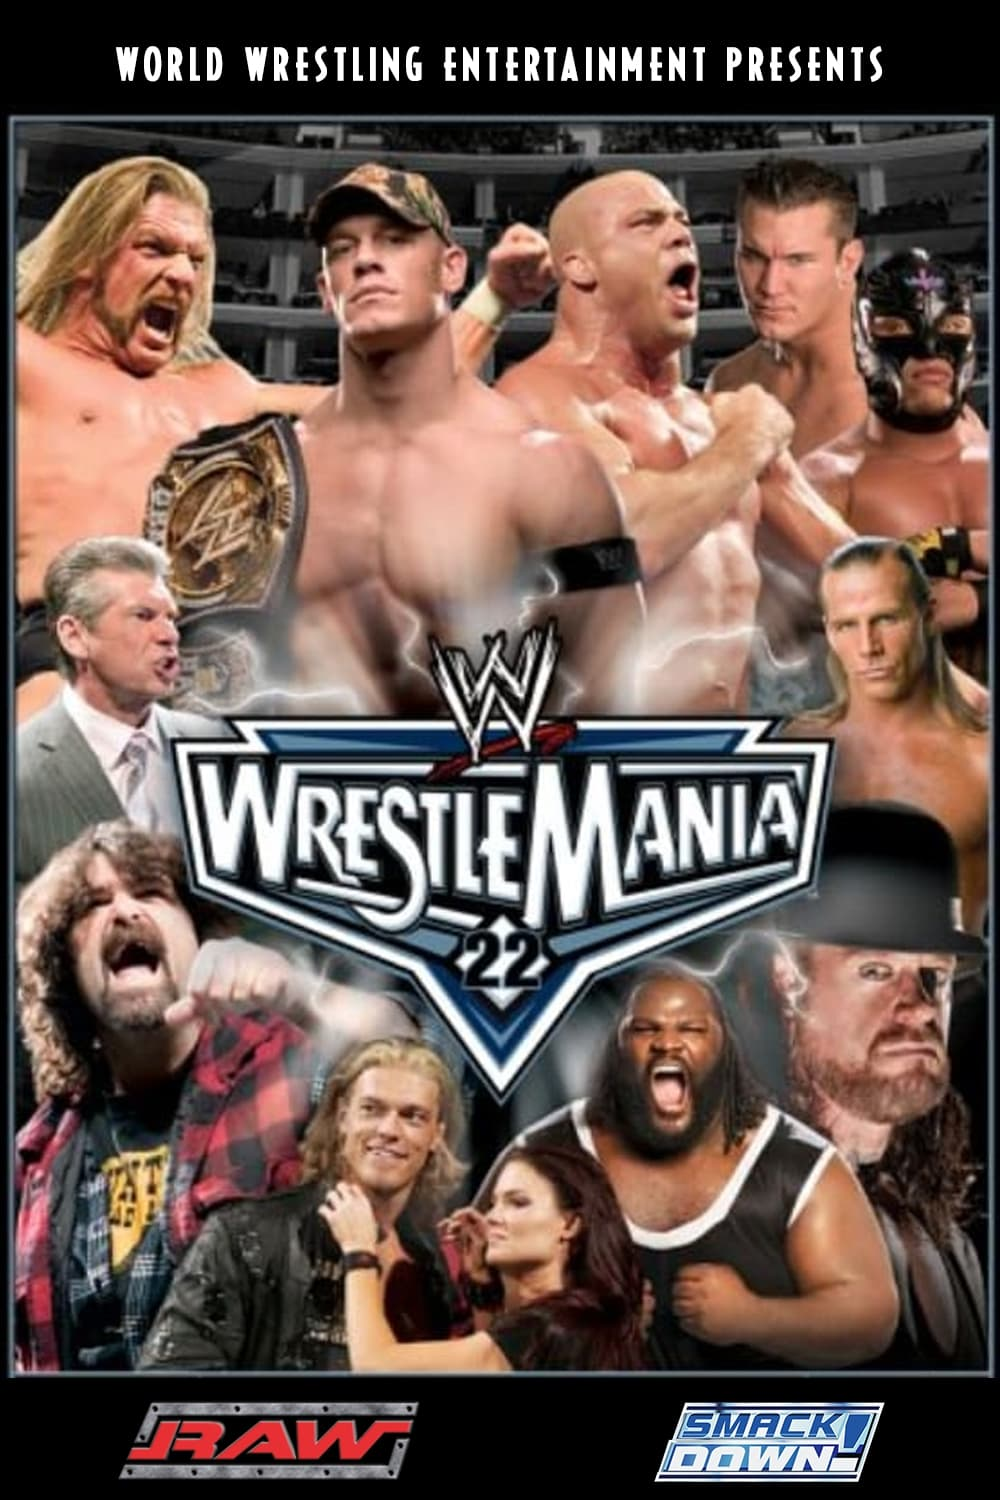 WWE WrestleMania 22